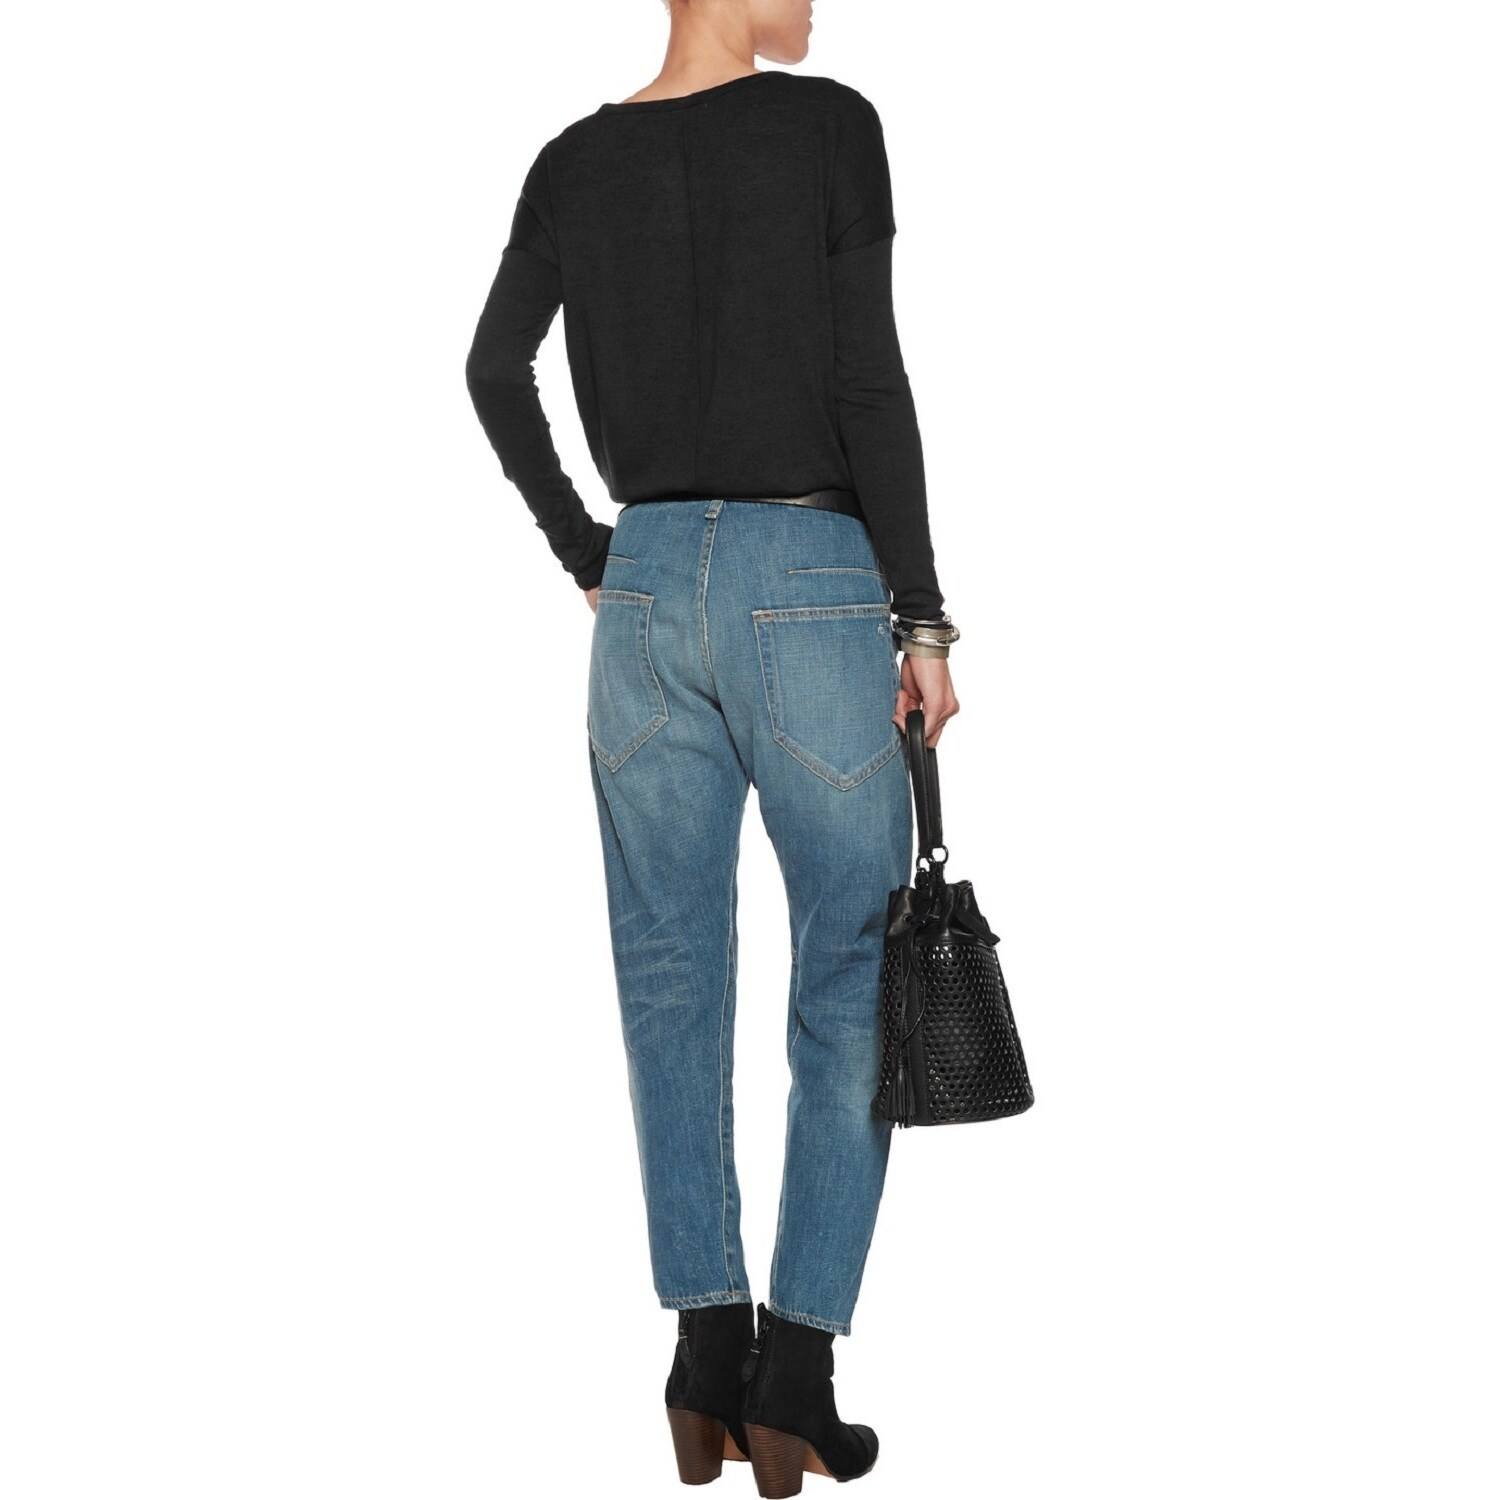 a57630ae61600 Shop Rag   Bone Women s Engineer Cropped Boyfriend Jeans - On Sale - Free  Shipping Today - Overstock - 14574226